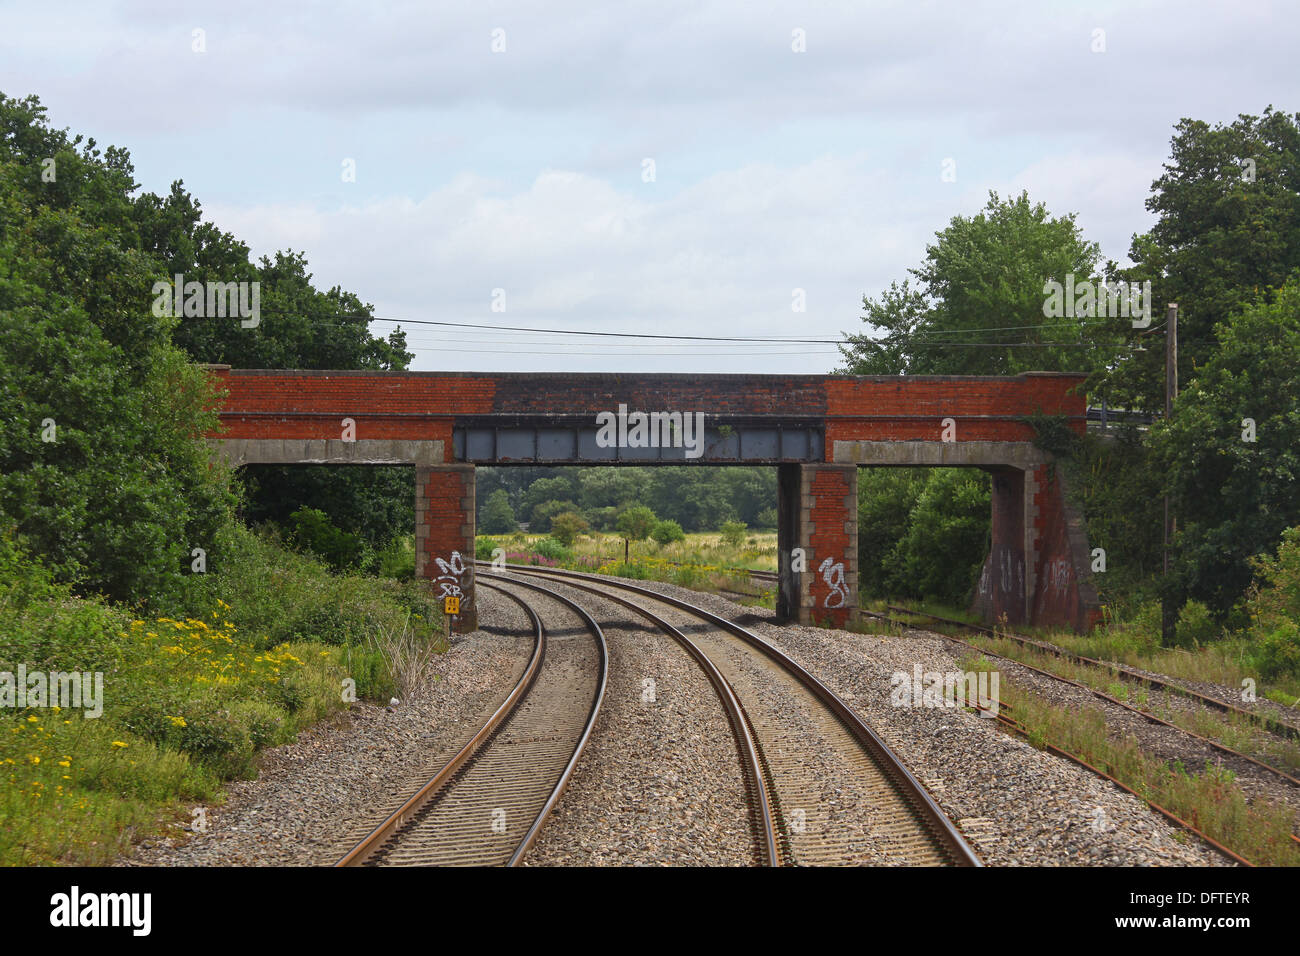 Approaching Padworth road Bridge on the Berks and Hants line looking towards Reading showing an old brick built bridge. - Stock Image